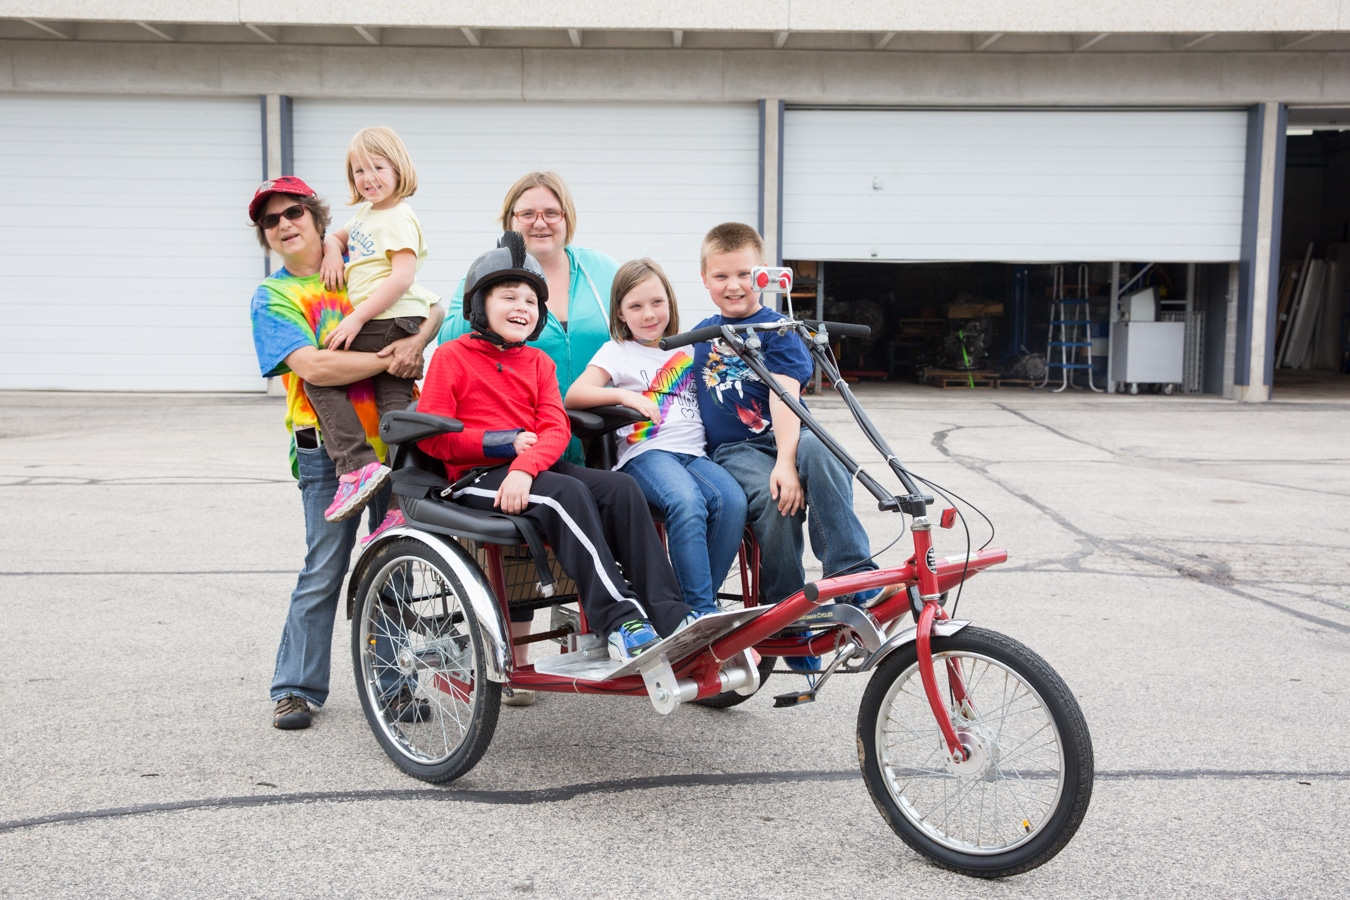 Mason and two other children on trike with two mothers behind